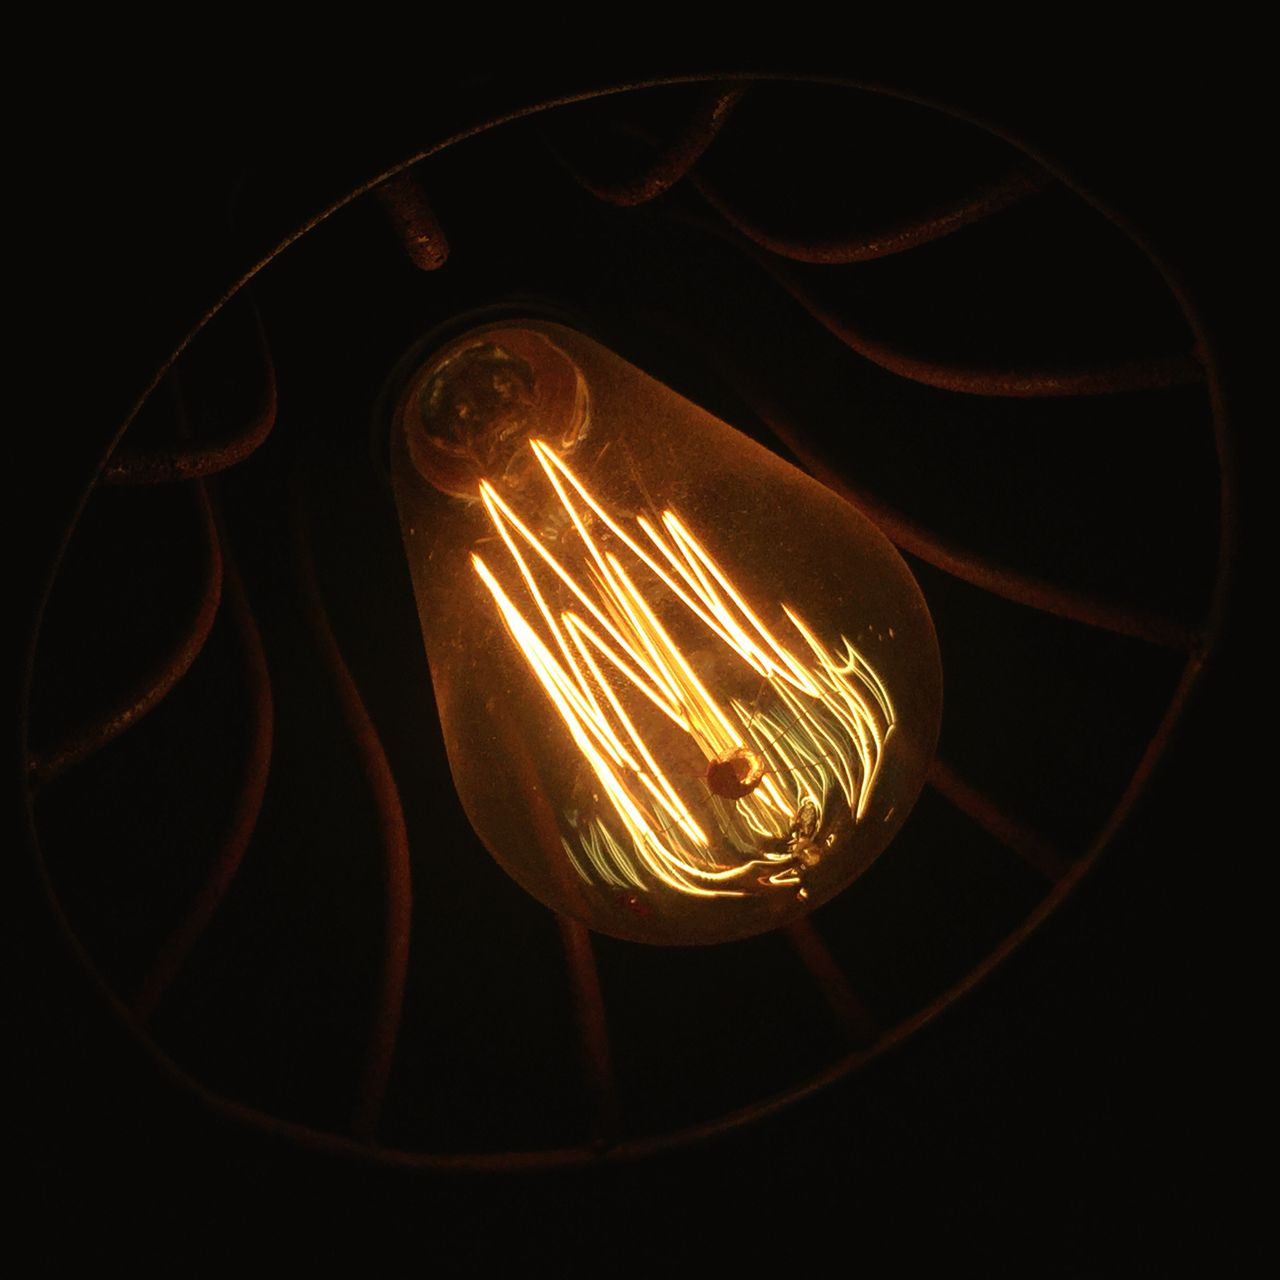 Filament Lights Recycled Illumination AMPt Community